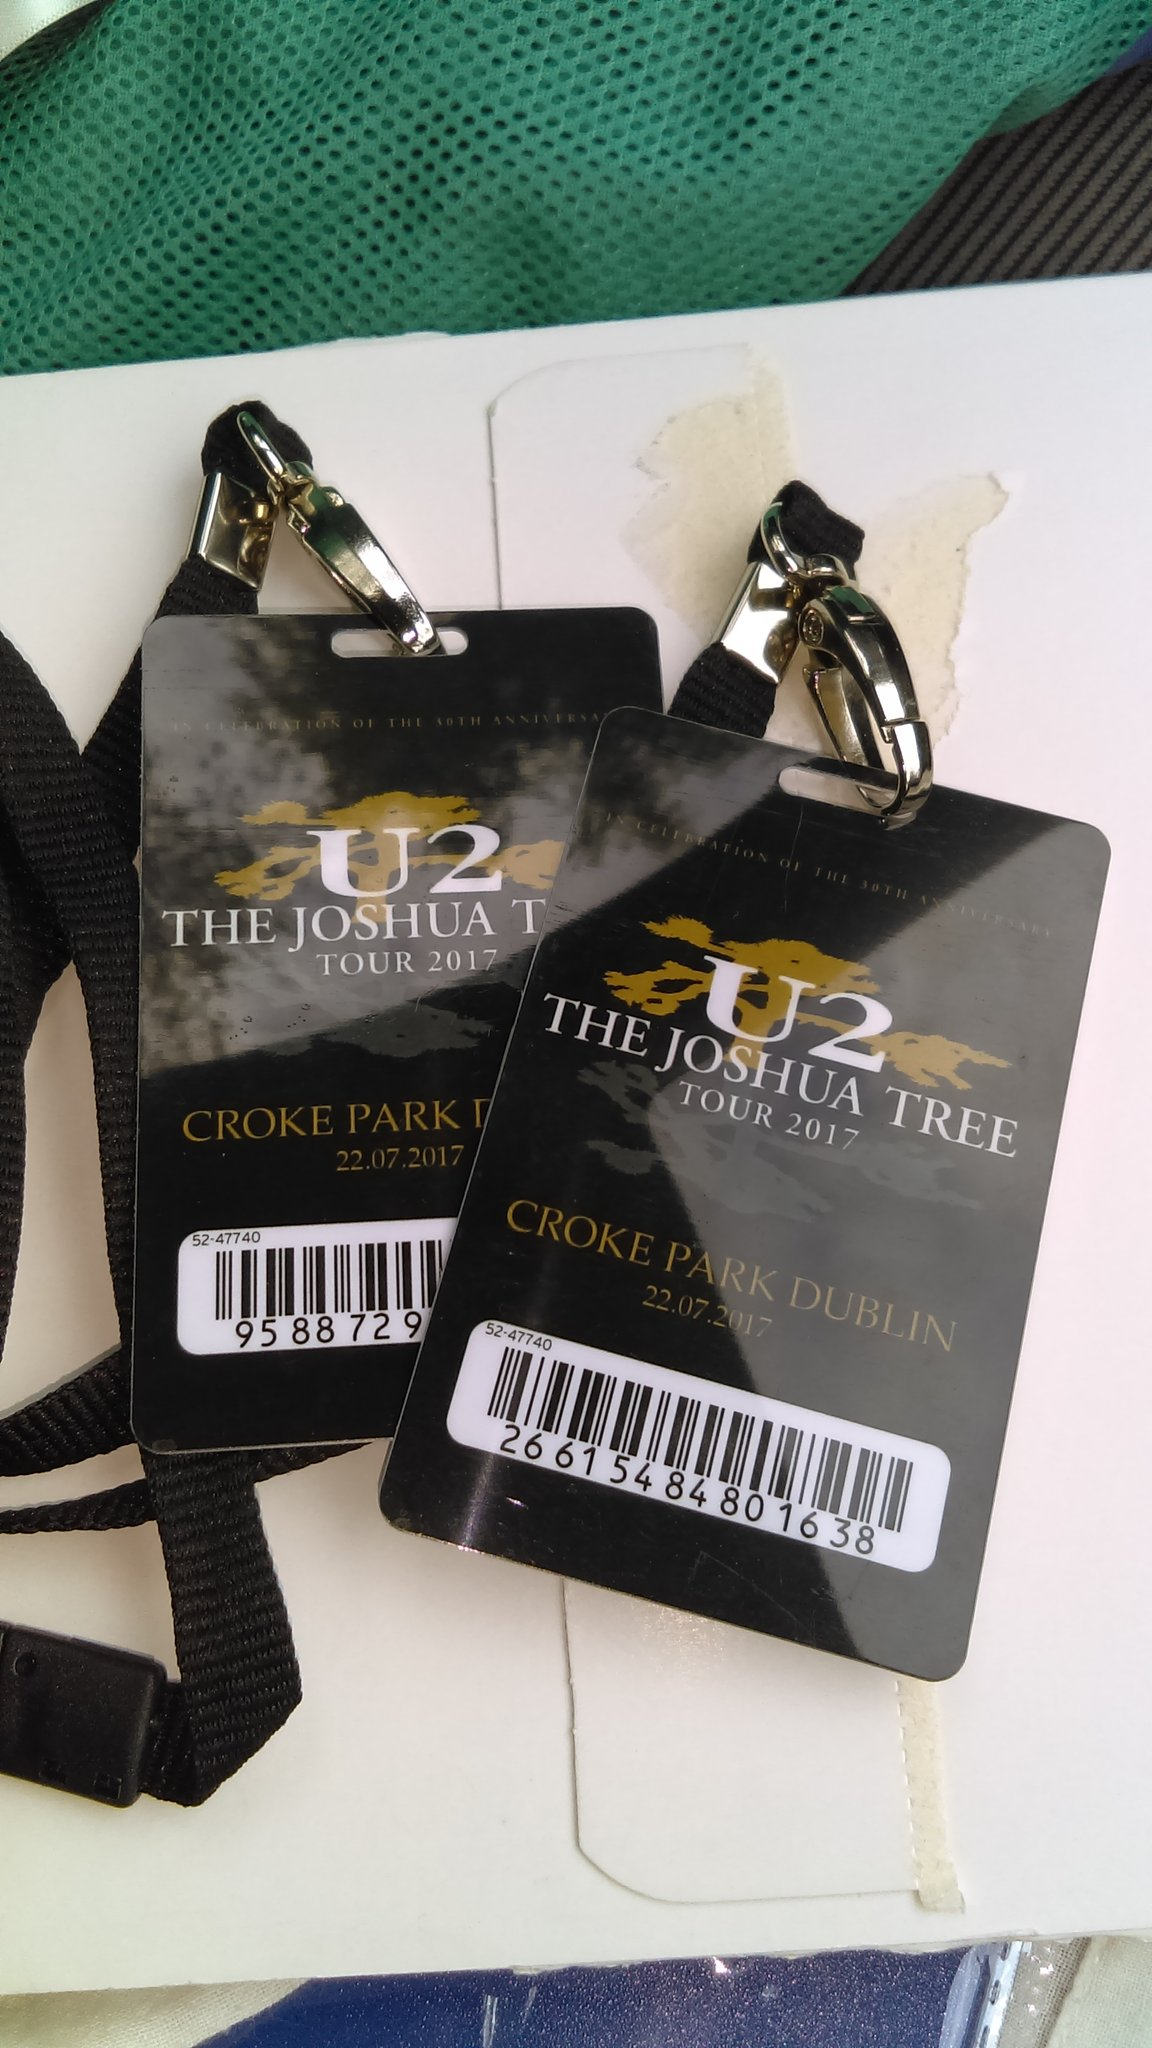 Operation Brownie Points complete. The things I do for himself 😁🤗 #U2JoshuaTreeTour2017 #lovewha https://t.co/zOQALiIfvy